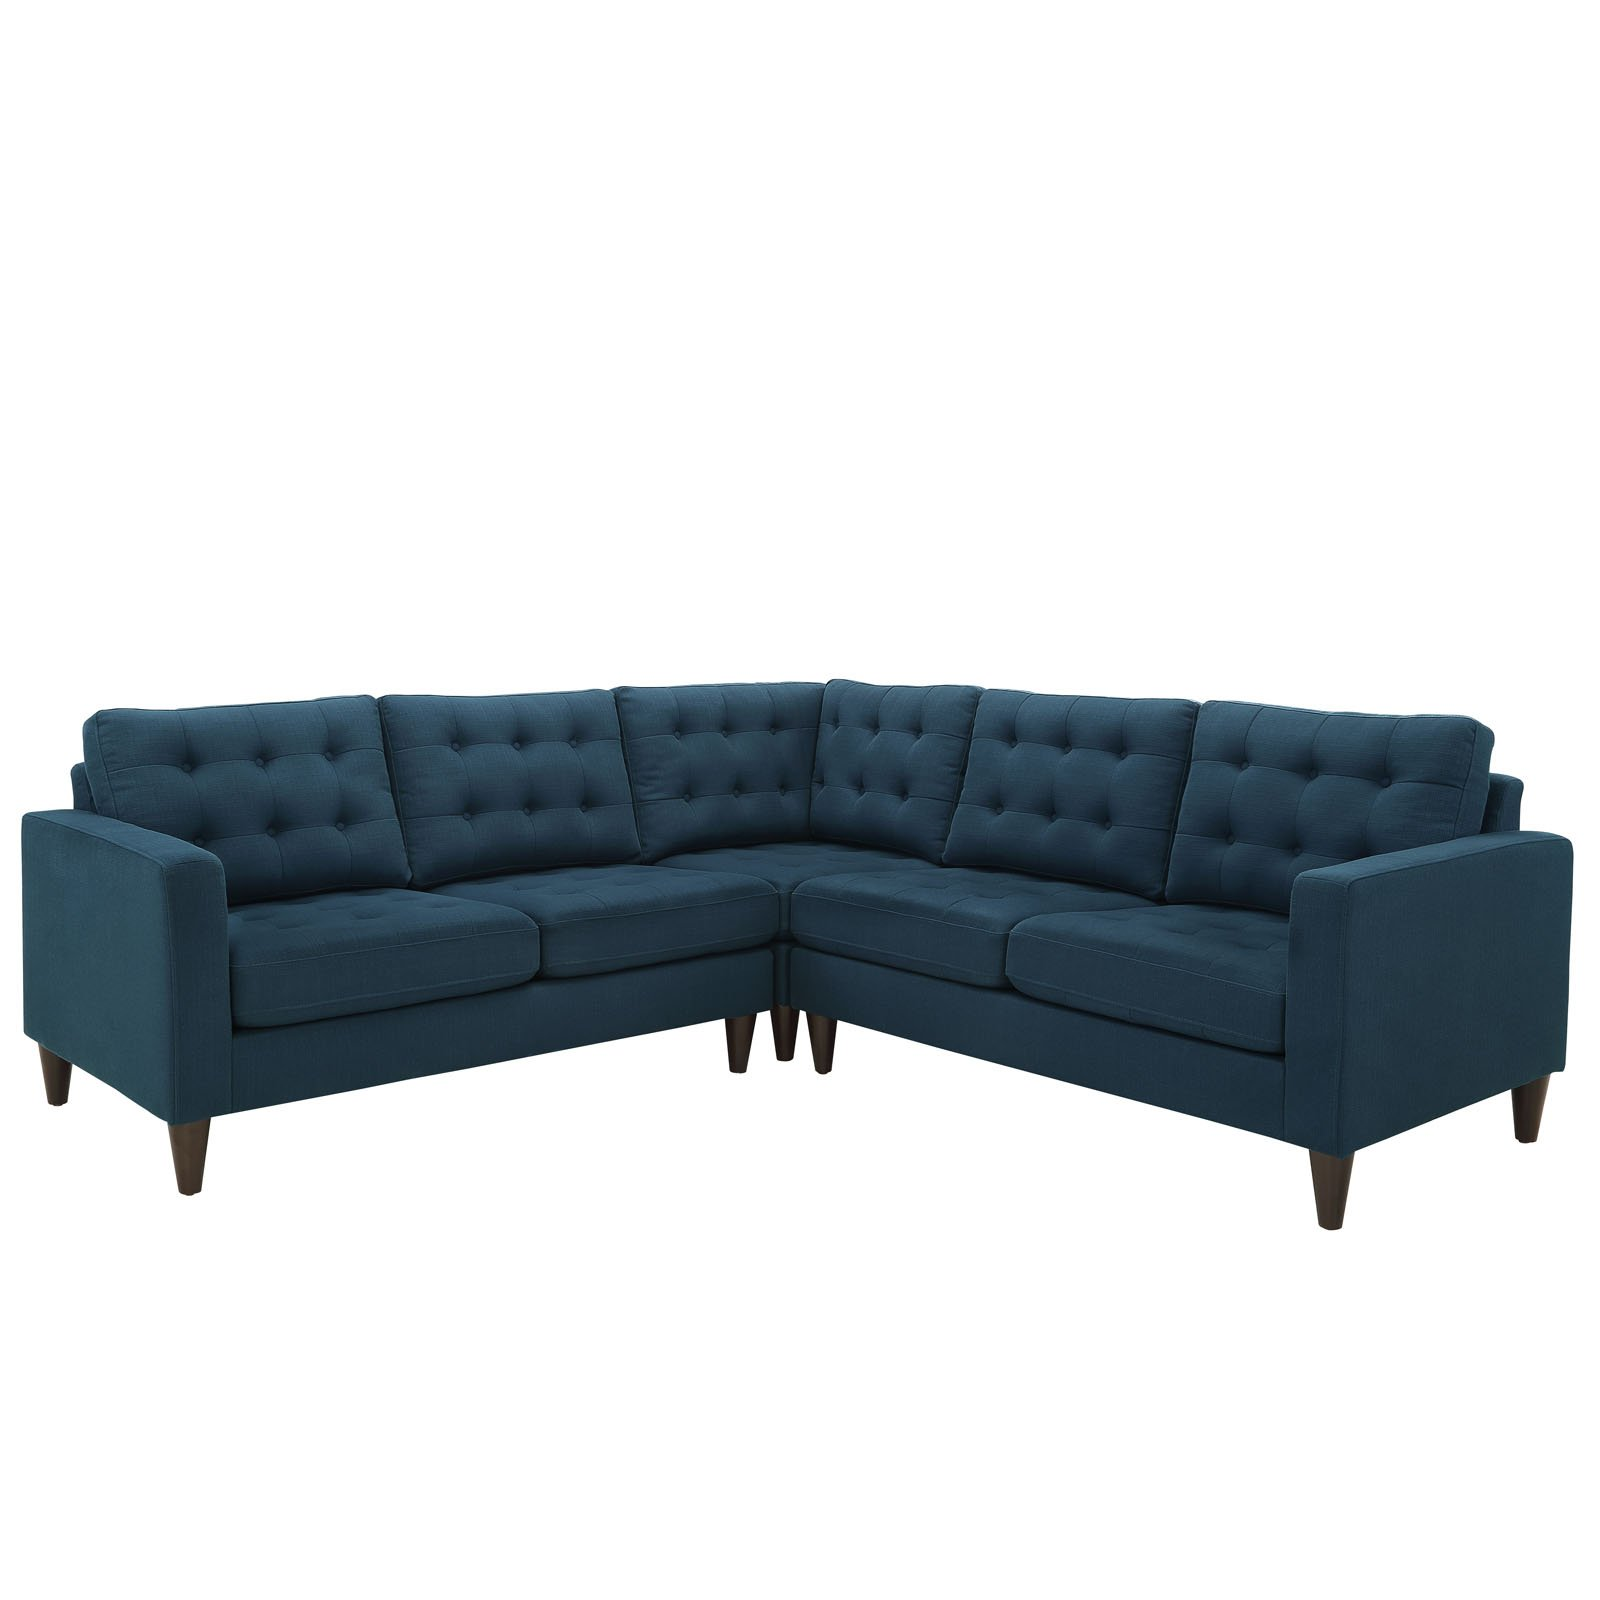 Modway Empress Mid-Century Modern Upholstered Fabric Sectional Sofa Set In Azure by Modway